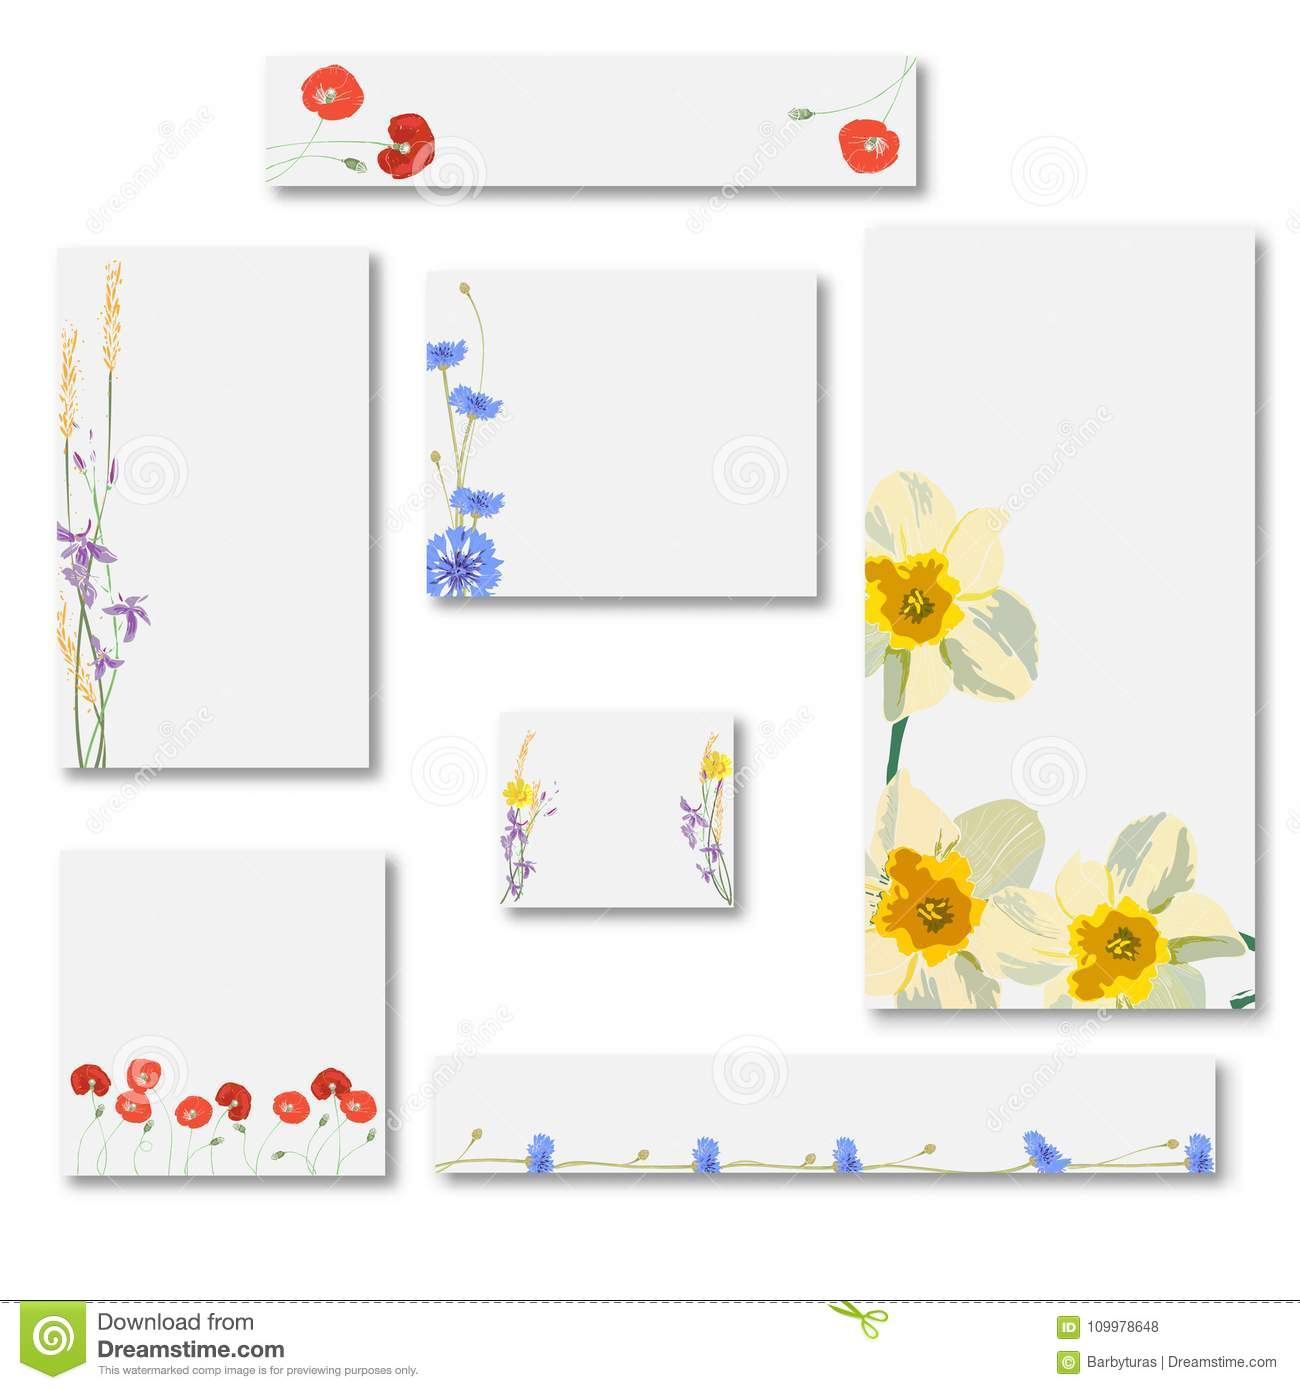 Abstract set of web banner templates with floral background for download abstract set of web banner templates with floral background for headers of websites stock illustration maxwellsz